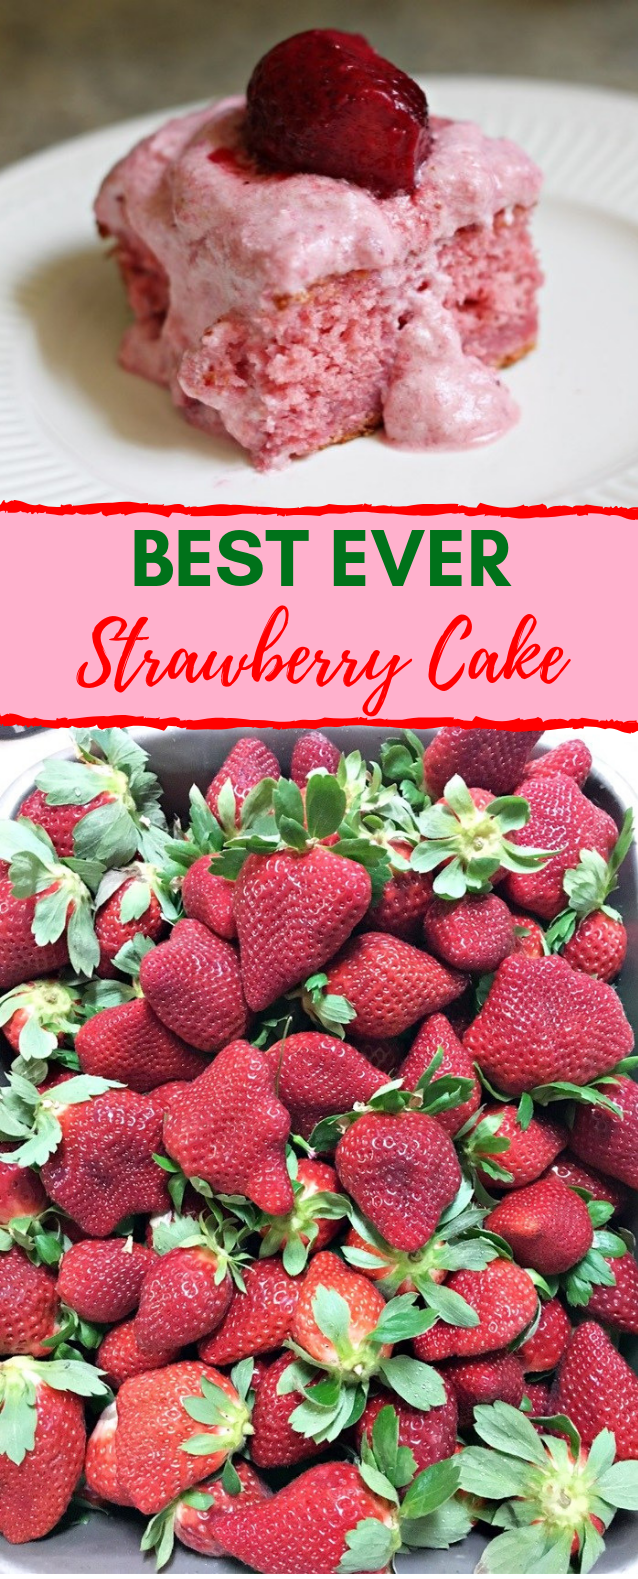 Best Ever Strawberry Cake #desserts #cakes